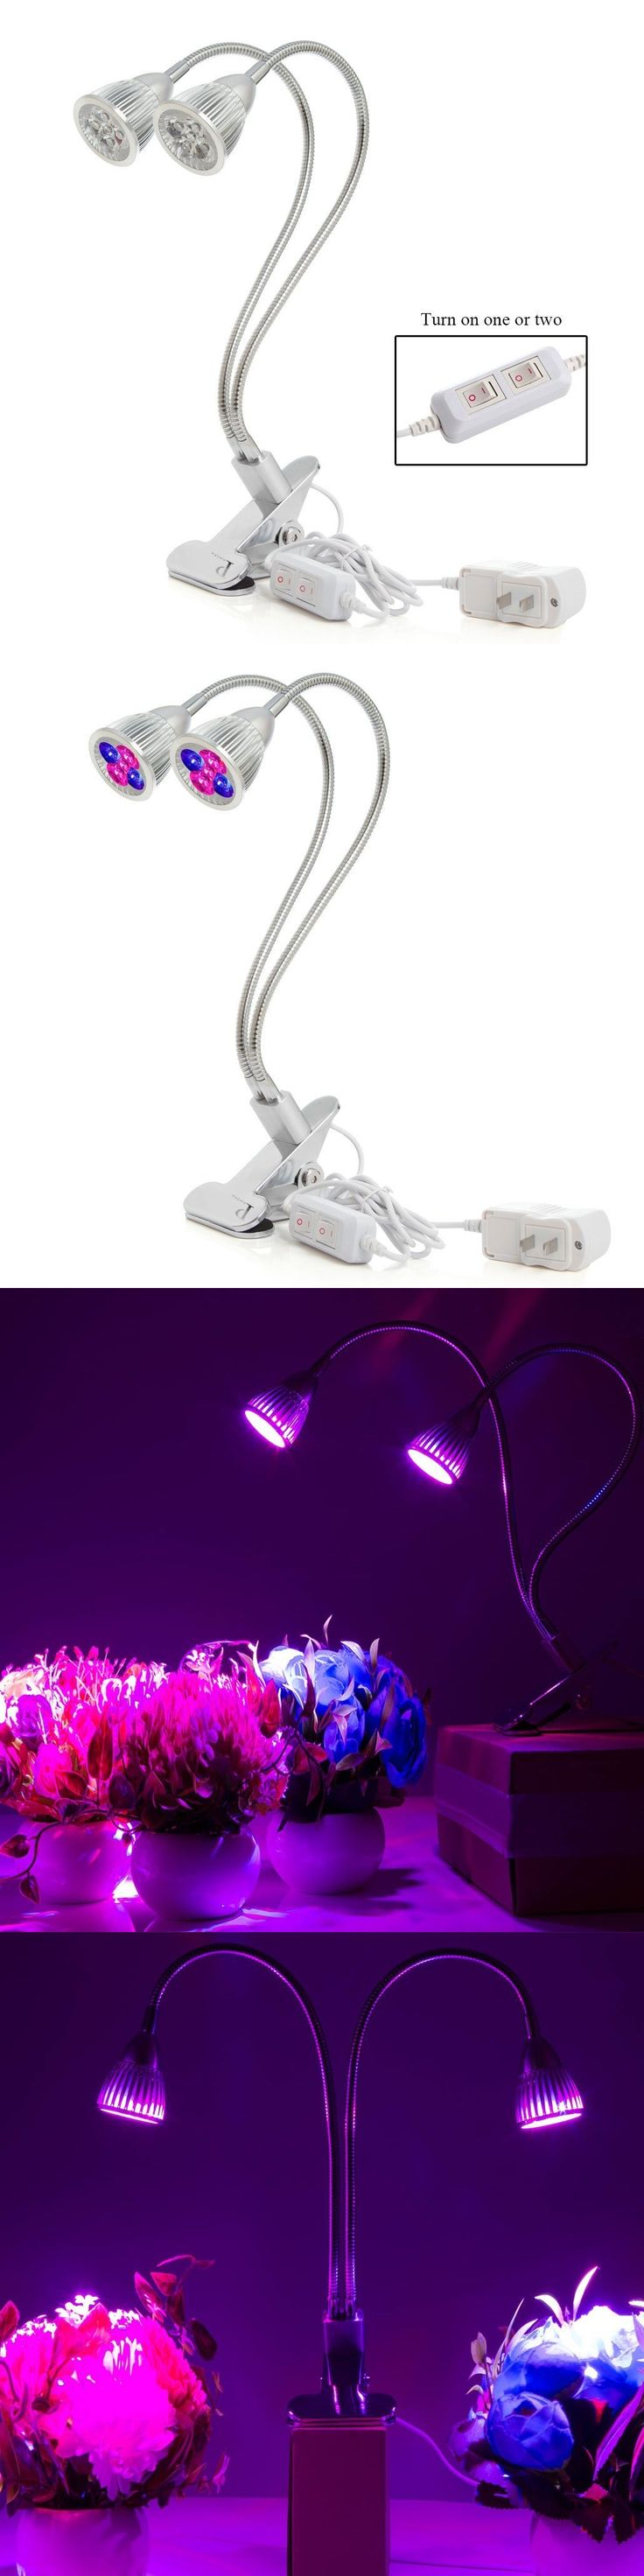 2017 New Dual Head Led Grow Light 10W Desk Clip Lamp 360 Degree Flexible Gooseneck Greenhouse Office For Indoor Plant and Flower